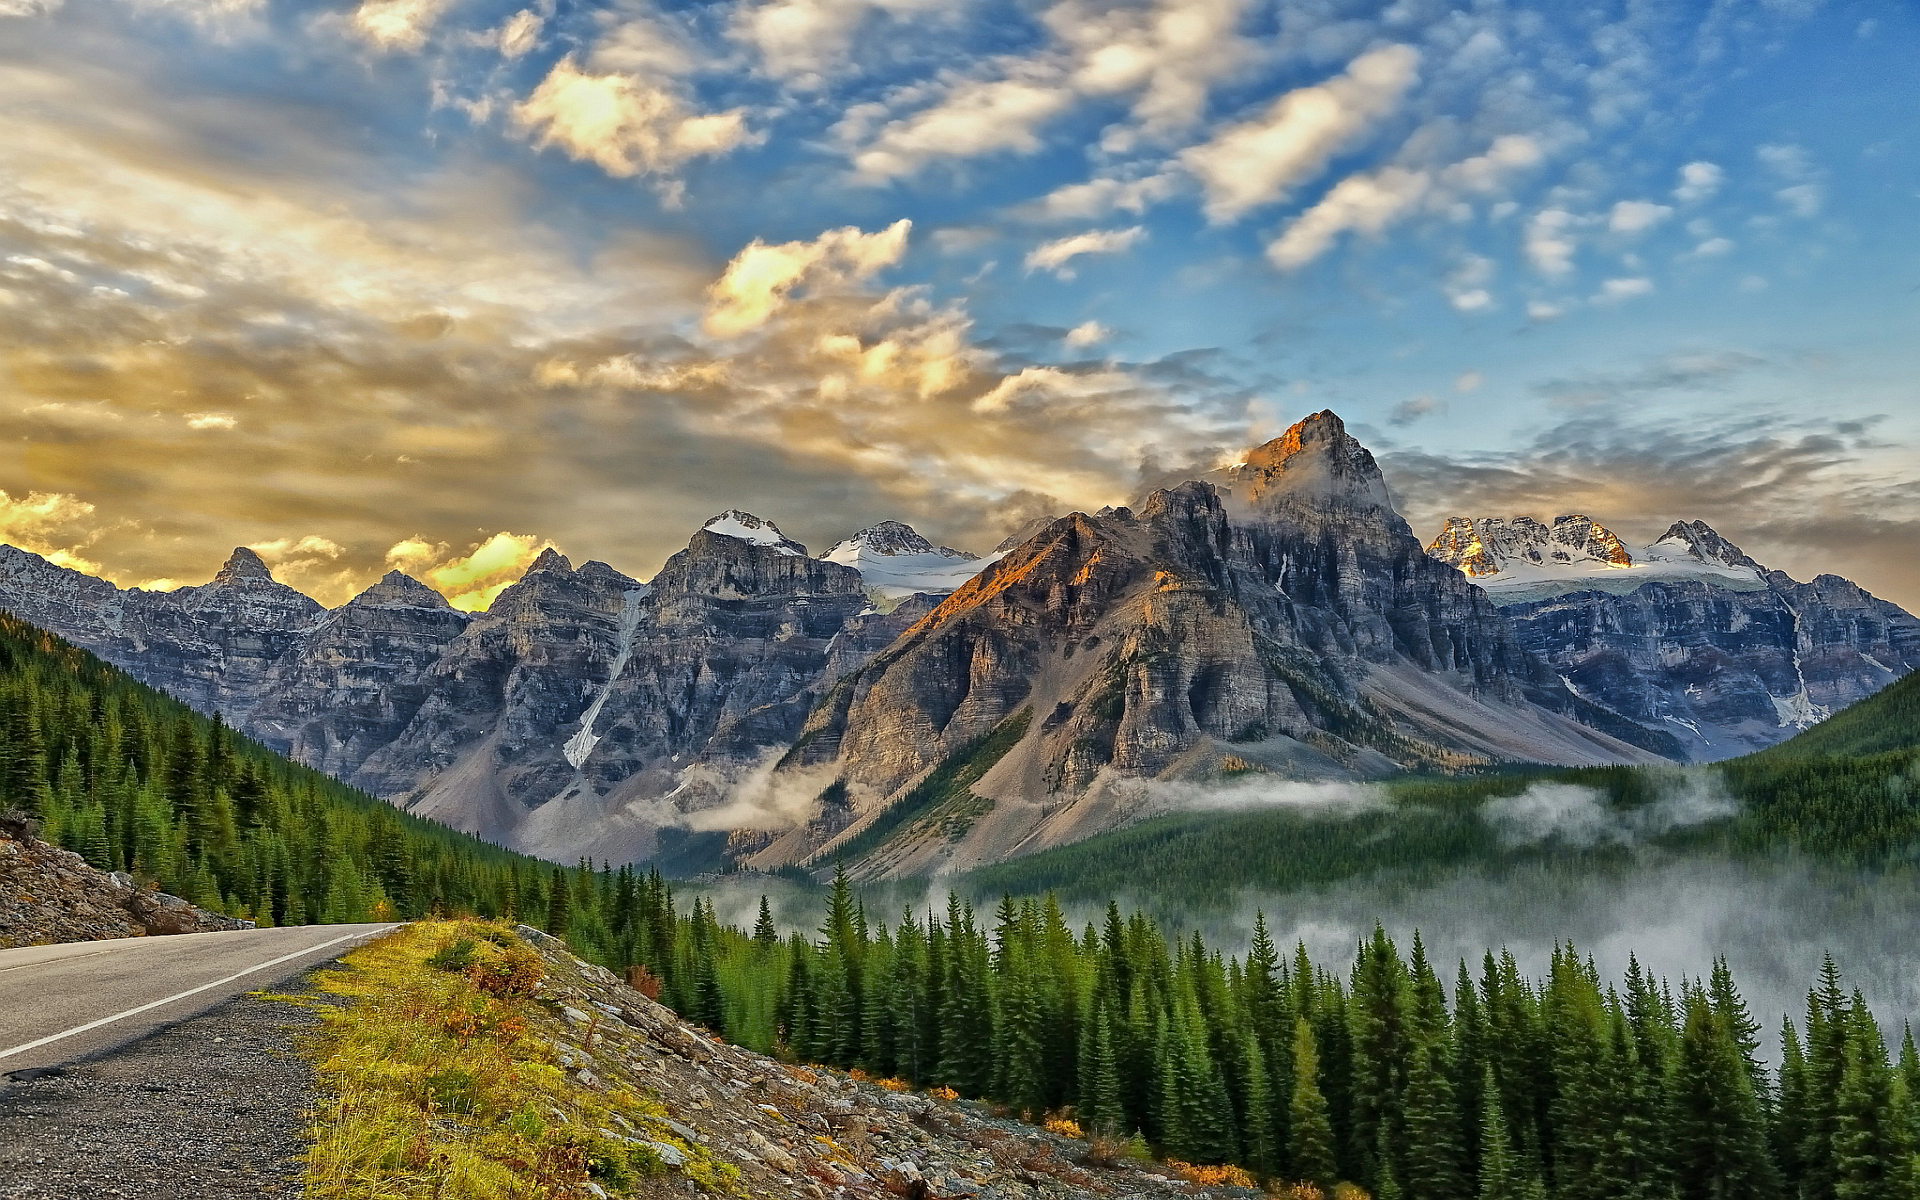 Android Wallpaper Majestic Mountains